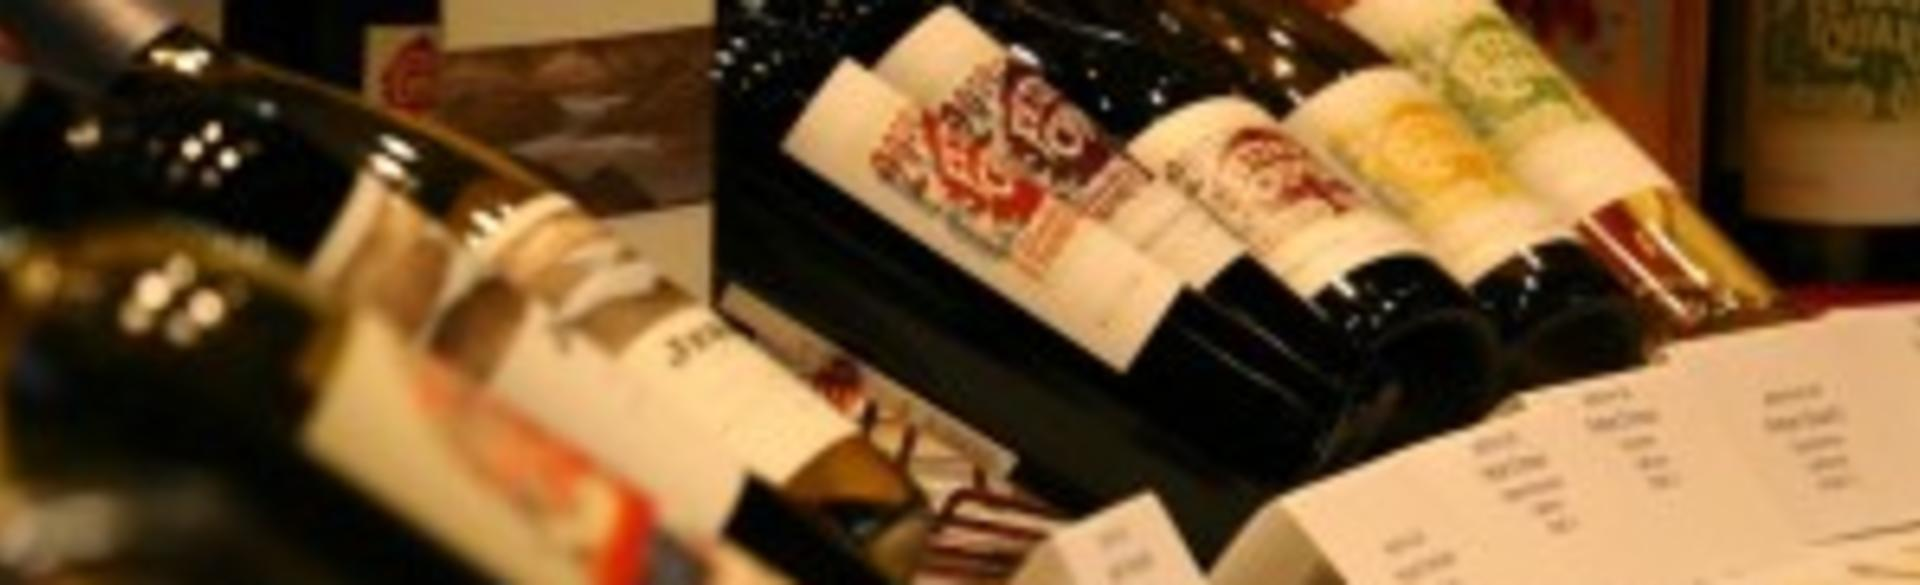 Wine, Beer and Food Festival 2014